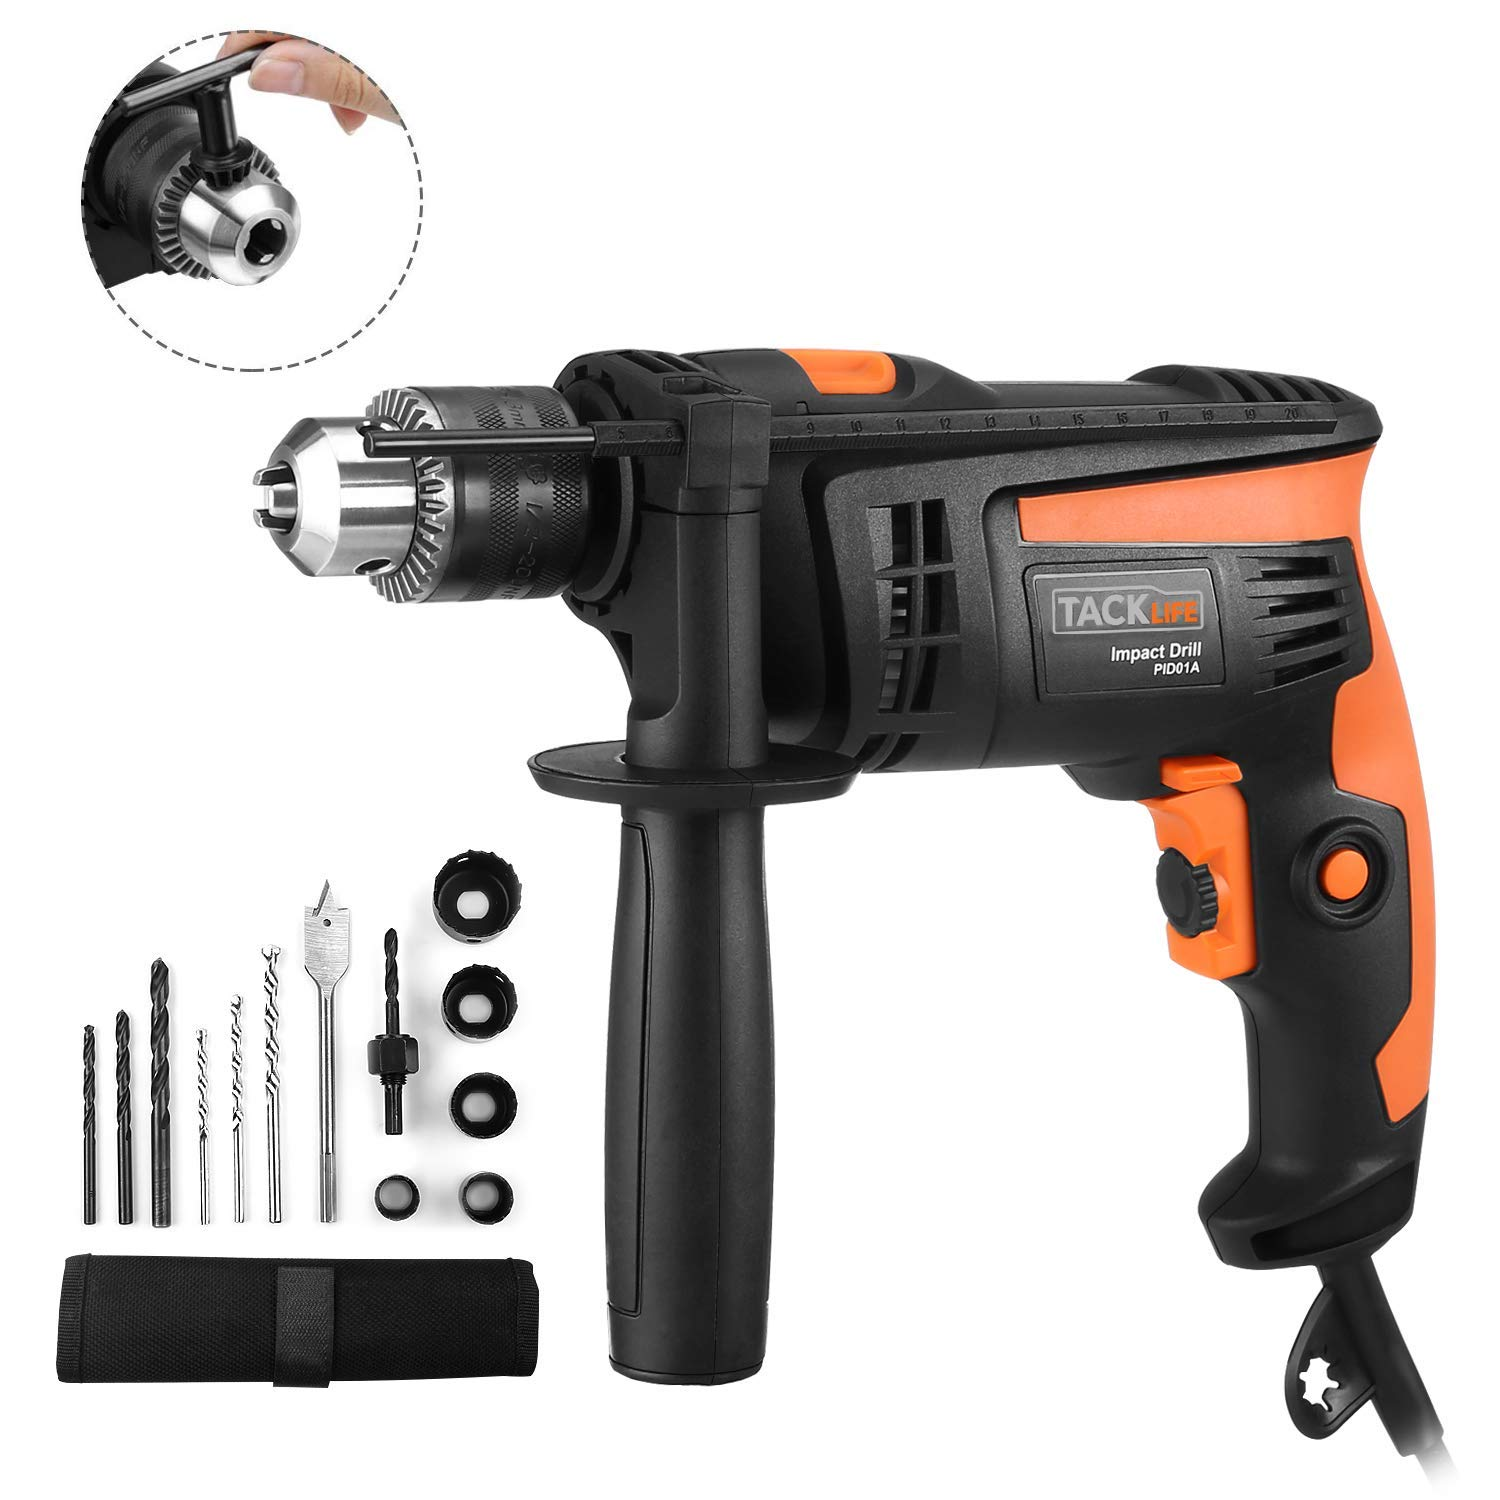 Hammer Drill, TACKLIFE 1/2-Inch Electric Drill, 12 Drill Bit Set, 2800 RPM, Variable-speed Trigger, 360° Rotating Handle, For Brick, Wood, Steel, Masonry - PID01A by TACKLIFE